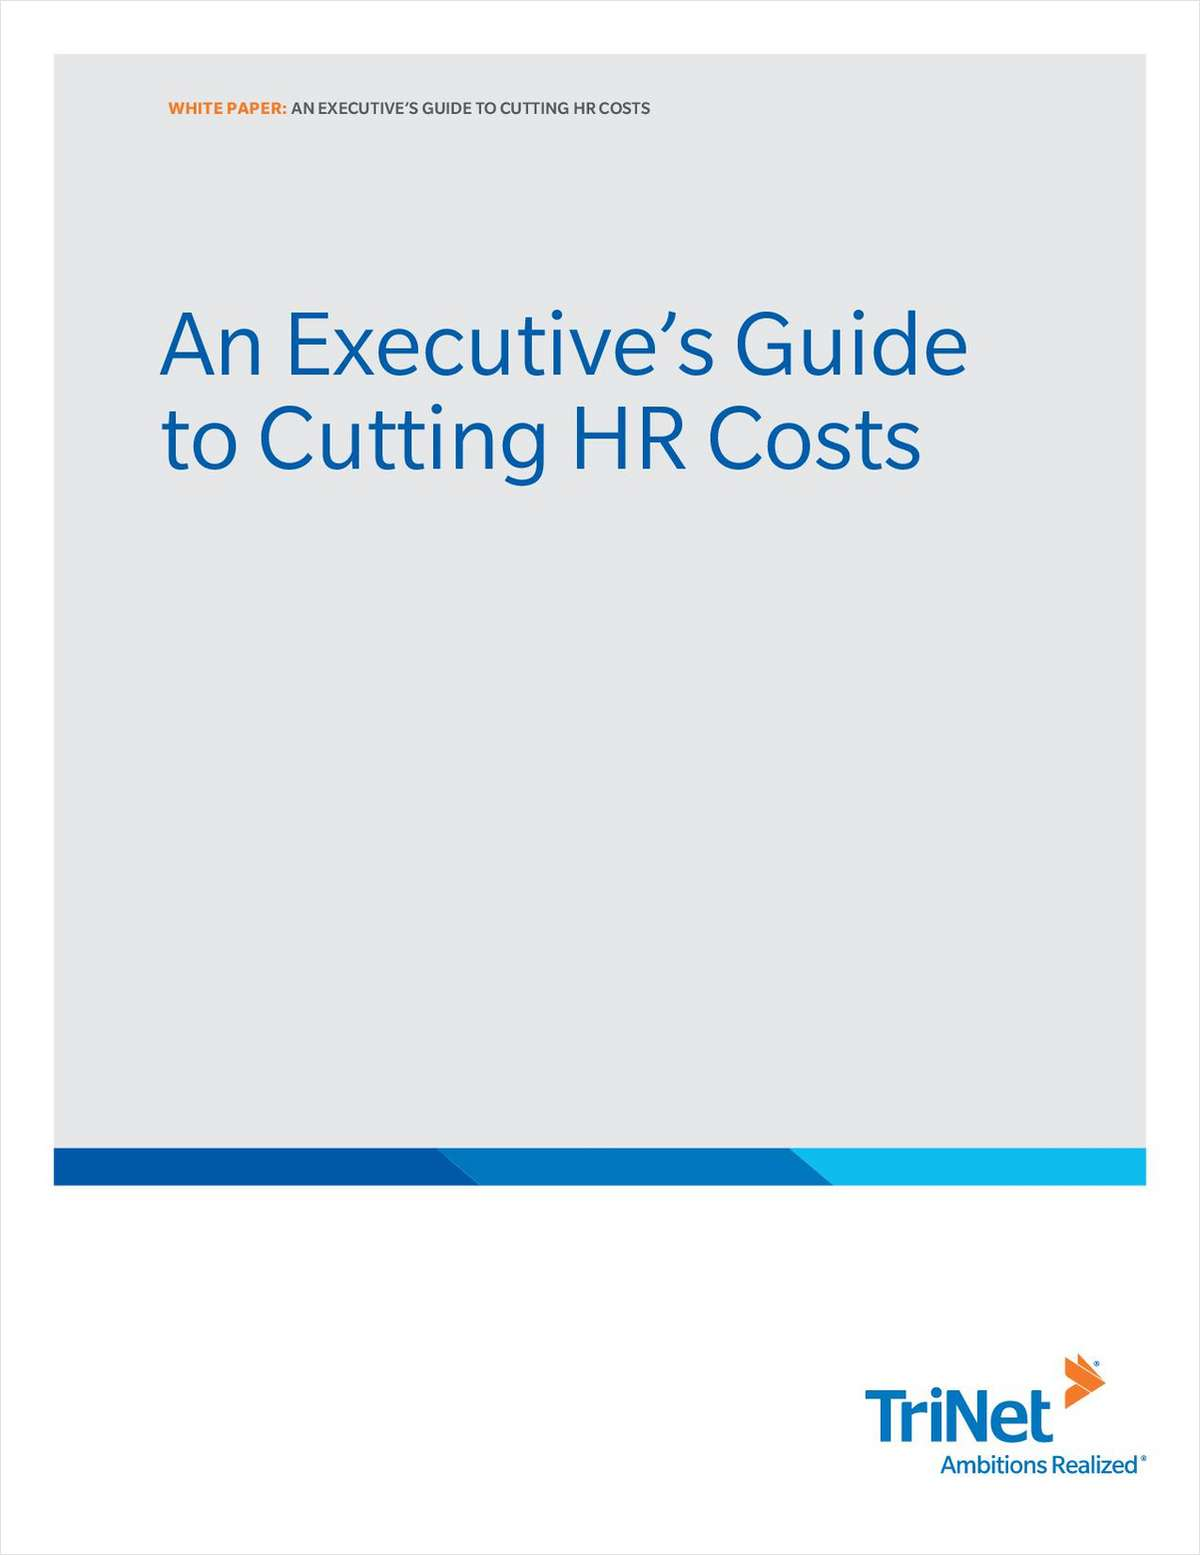 An Executive's Guide to Cutting HR Costs